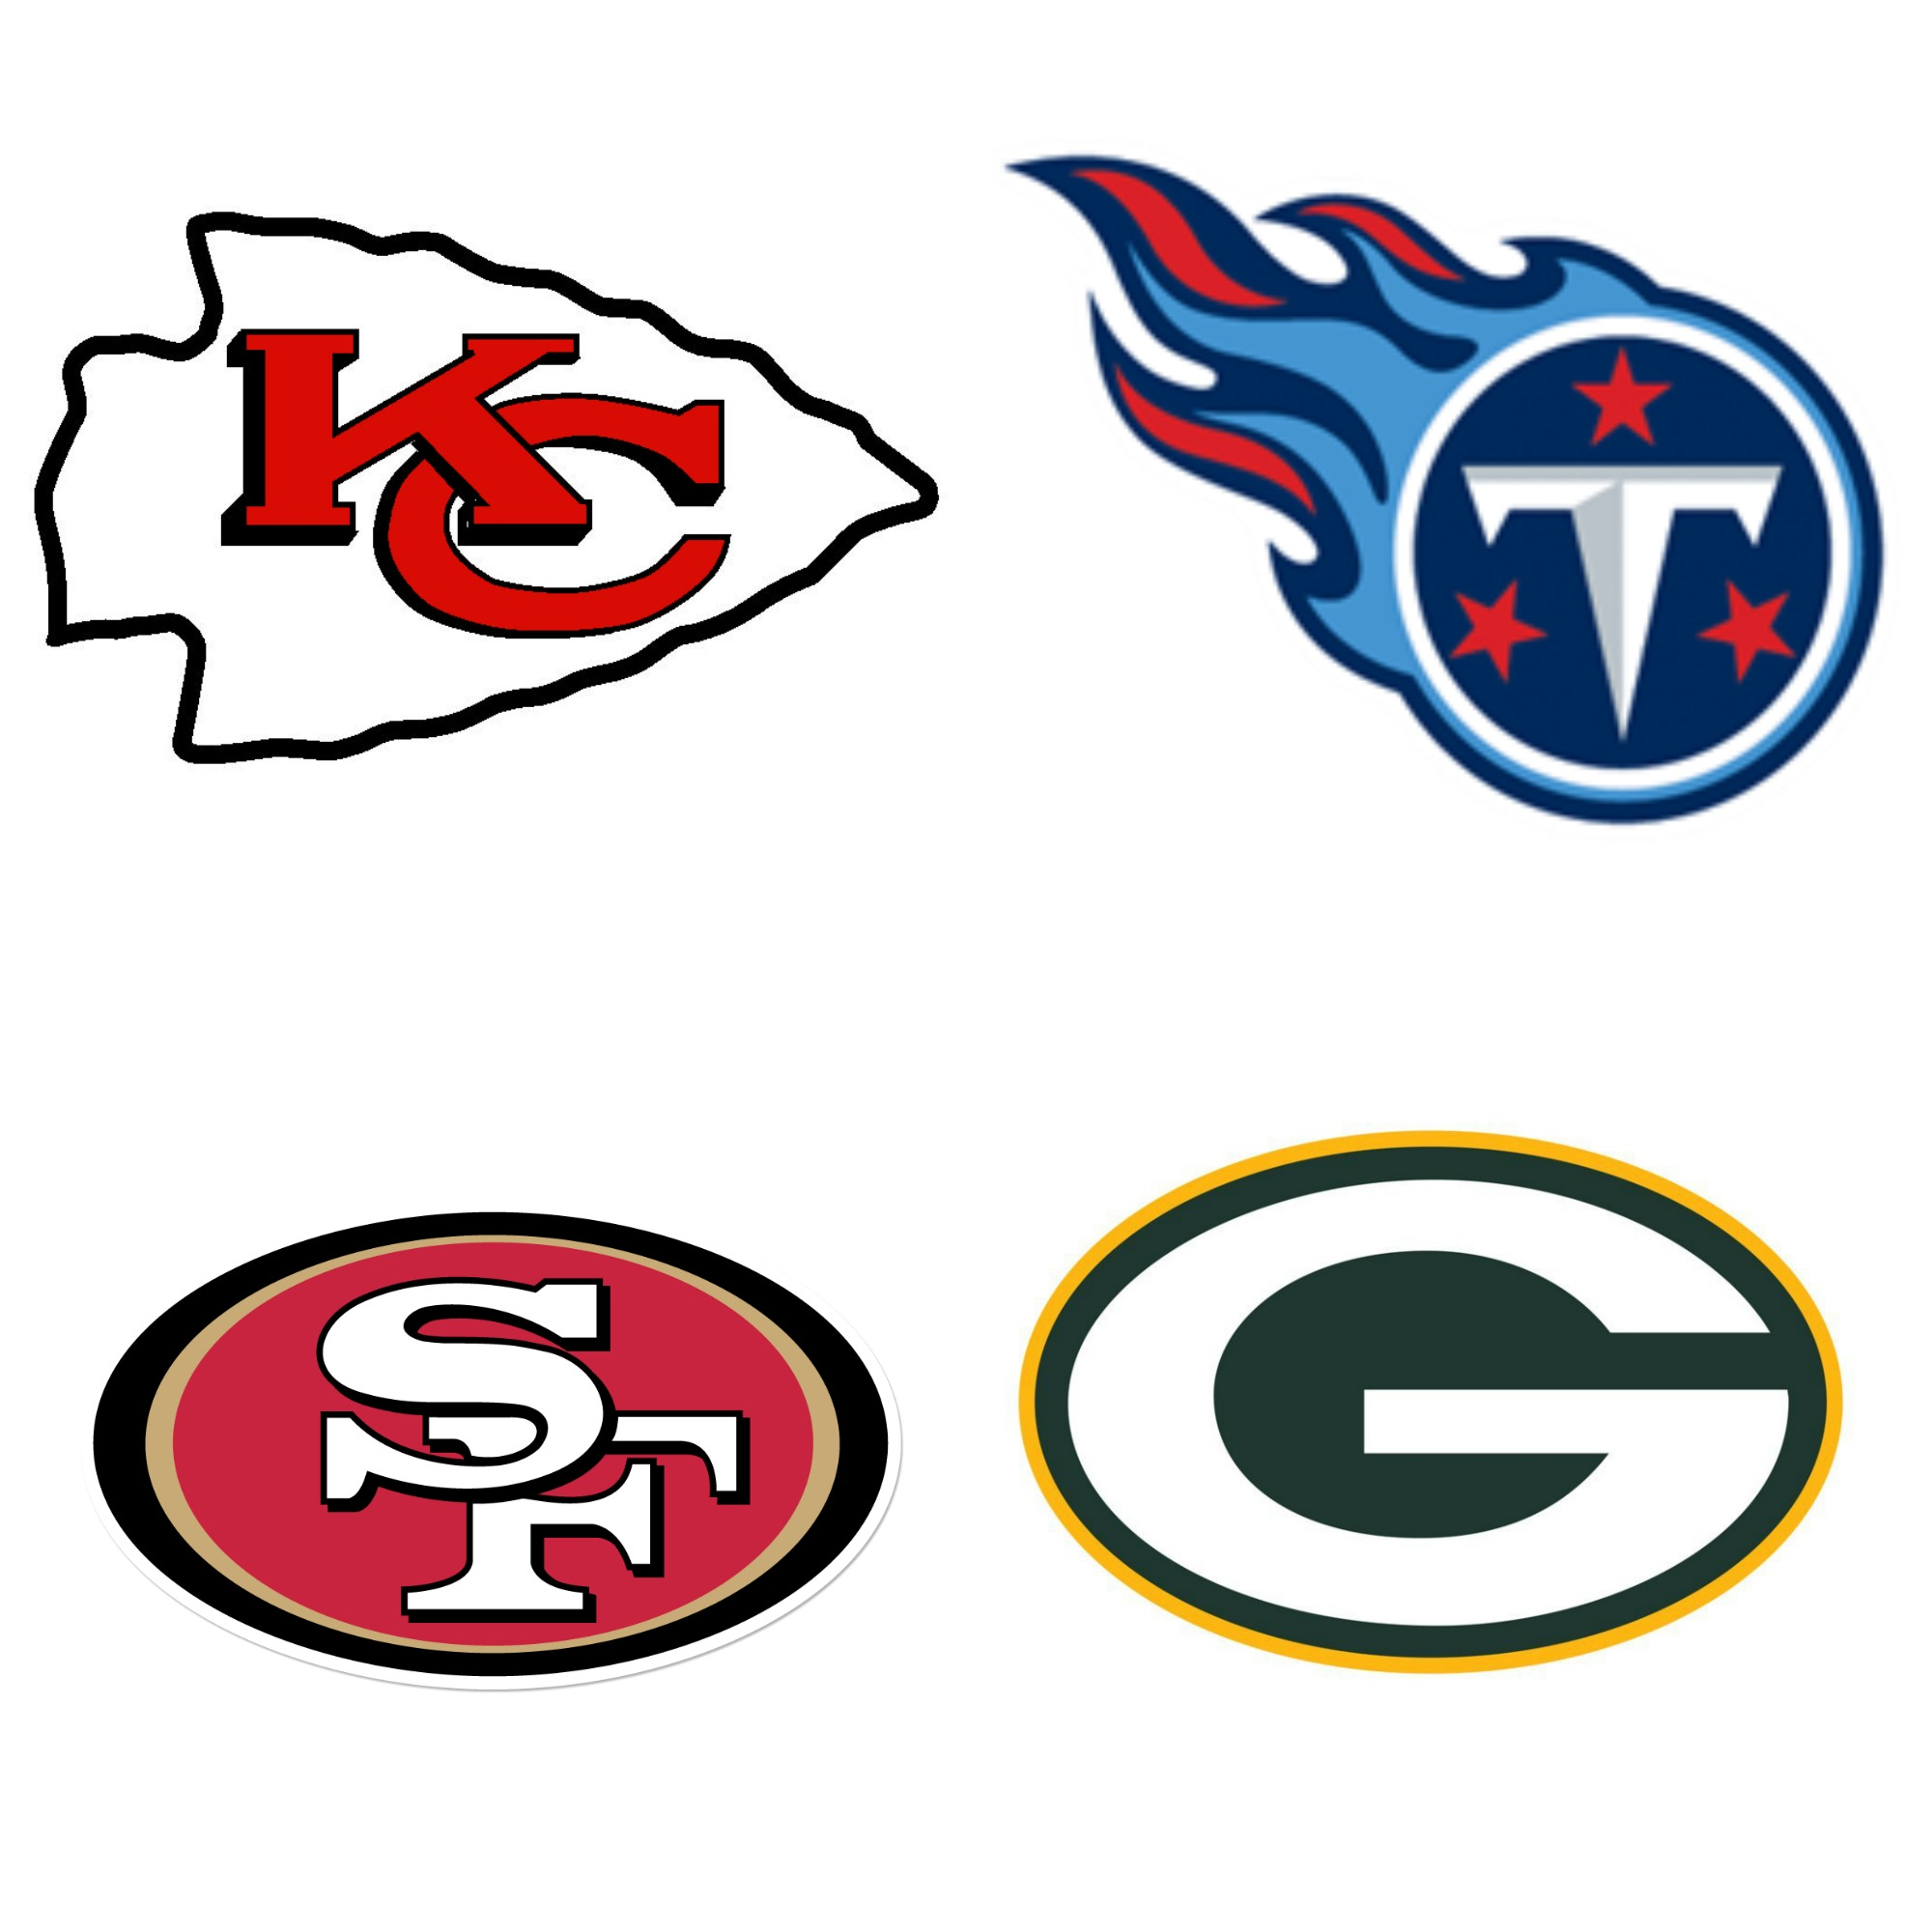 Daddy's Hangout NFL 2020 Conference Championship Predictions